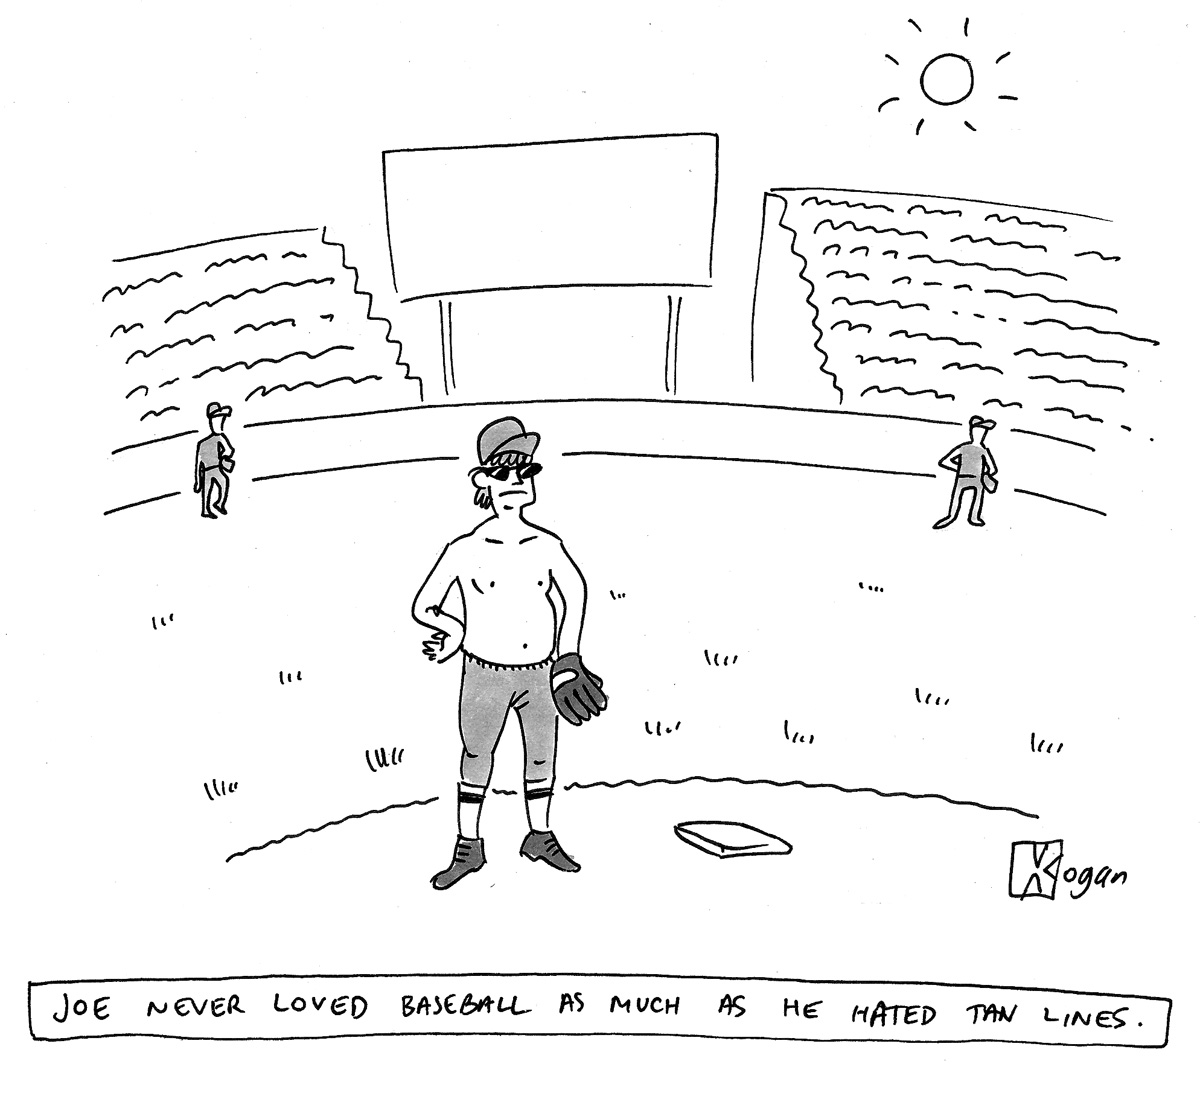 Joe never loved baseball as much as he hated tan lines.